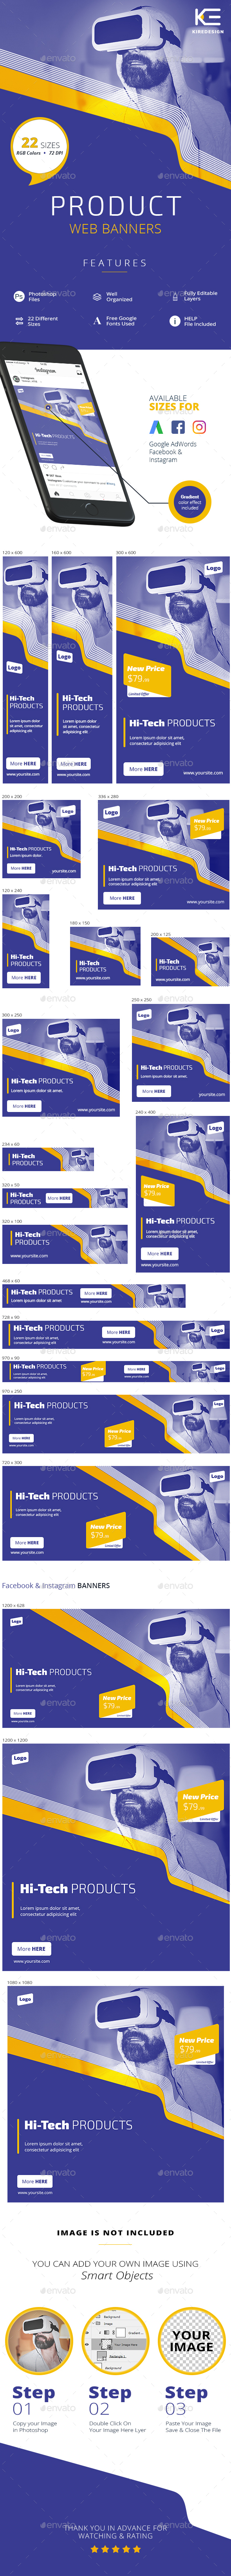 Product Banners - Banners & Ads Web Elements